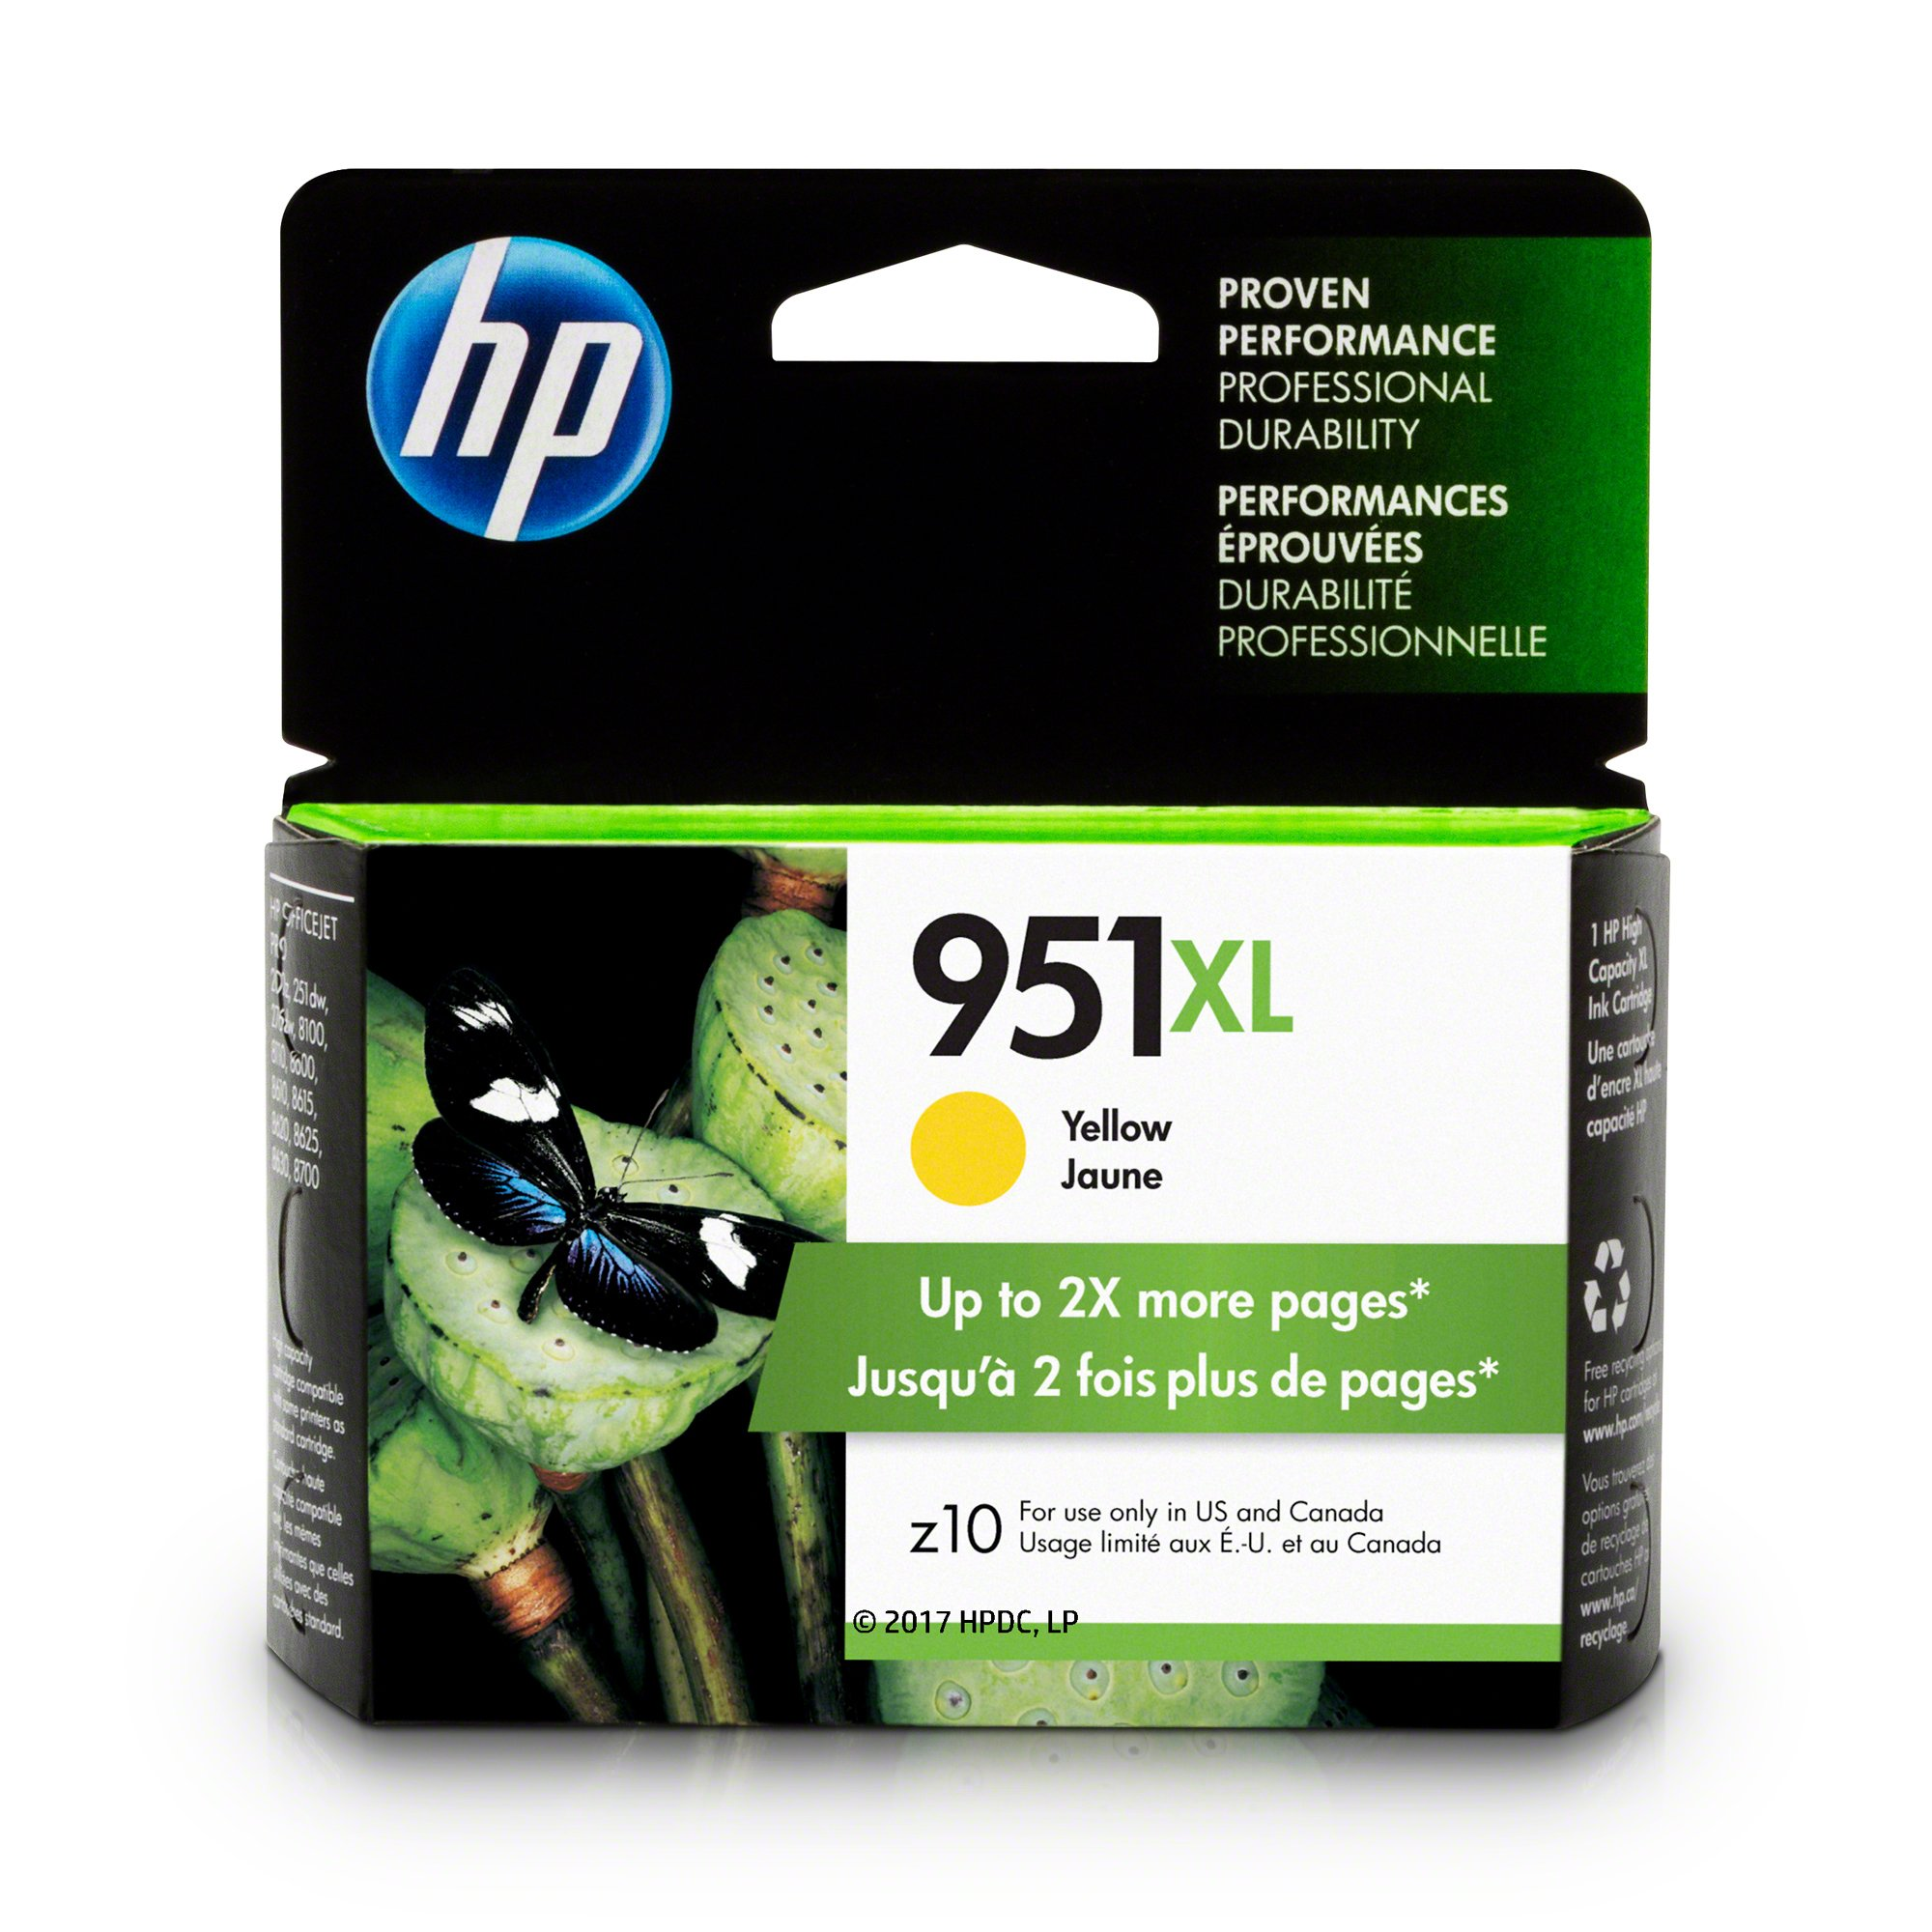 HP CN048AN#140 951XL Ink Cartridge, Yellow High Yield (CN048AN) for Officejet Pro 251, 276, 8100, 8600, 8610, 8620, 8625, 8630…